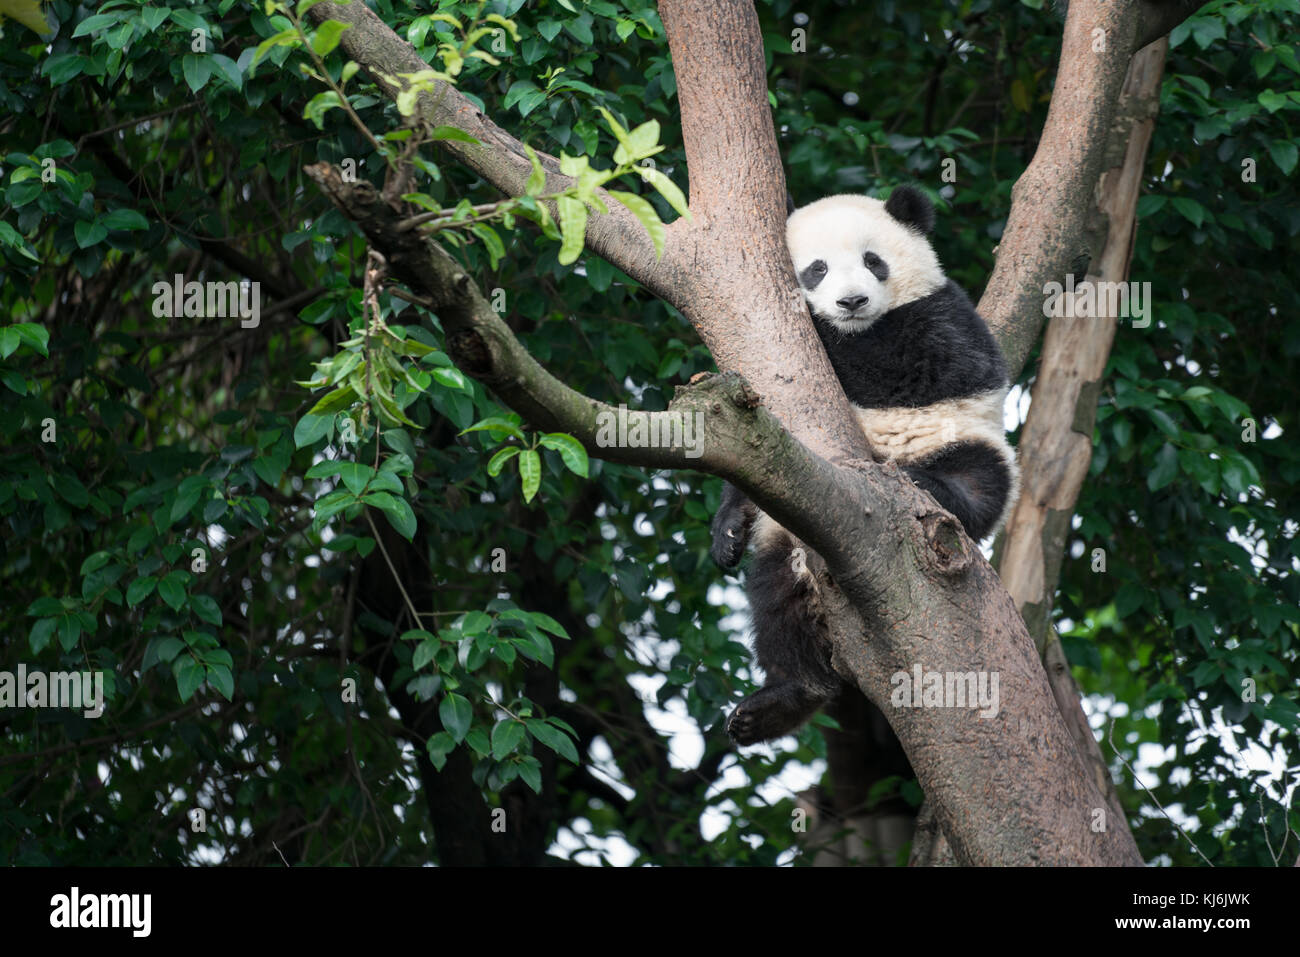 Panda sleeping on a tree in Chengdu Research Base of Giant Panda Breeding, Sichuan Province, China - Stock Image